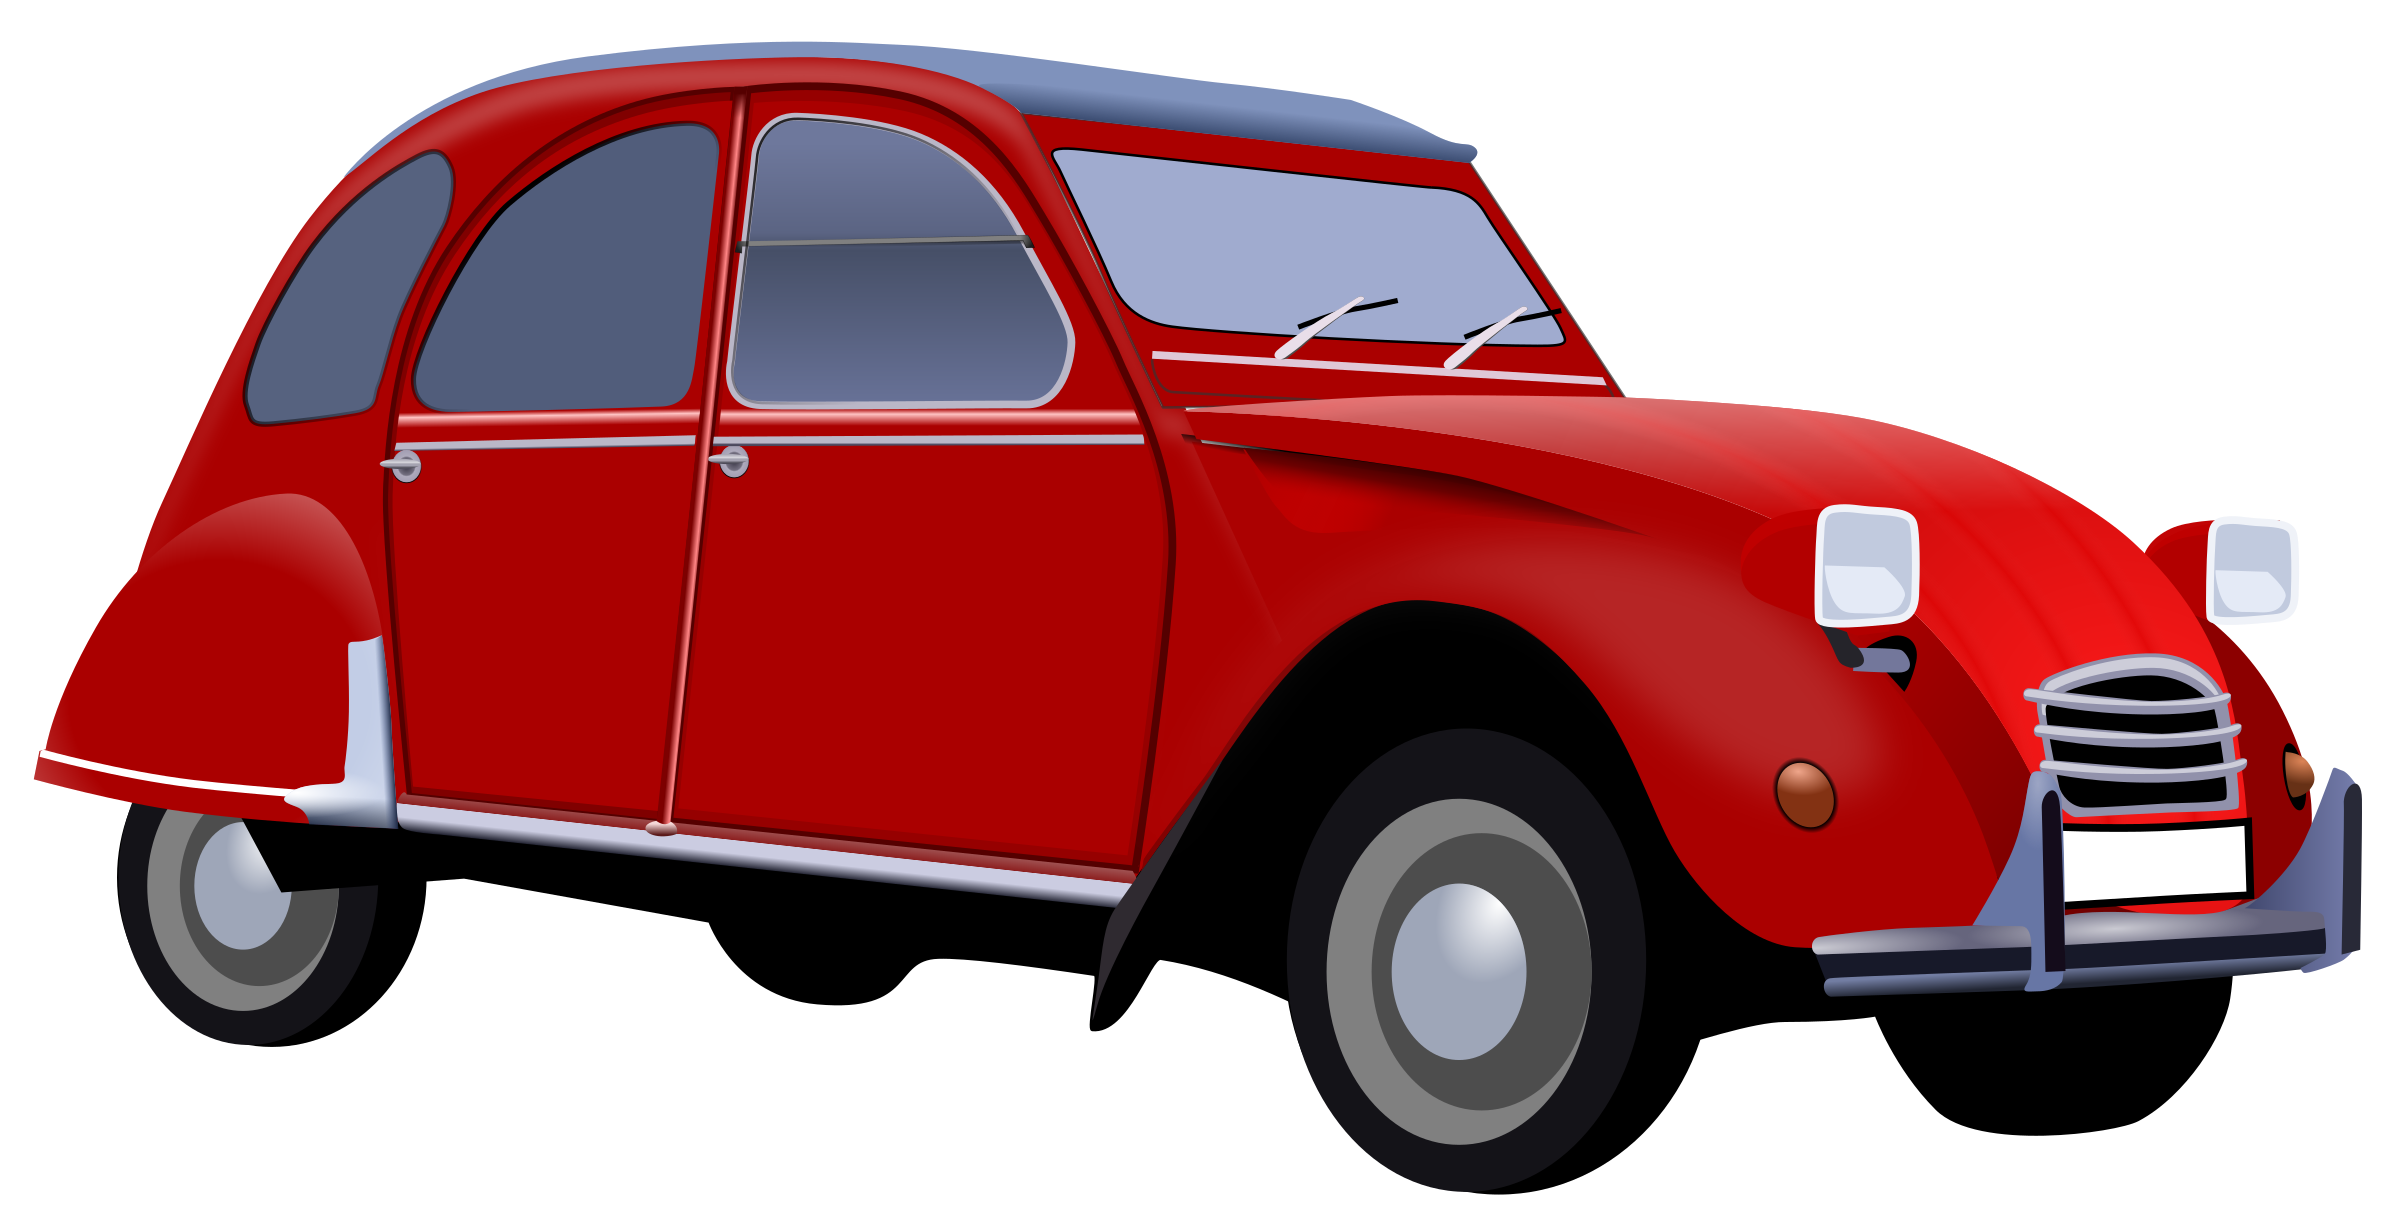 2cv4 Automobile Car by webmichl